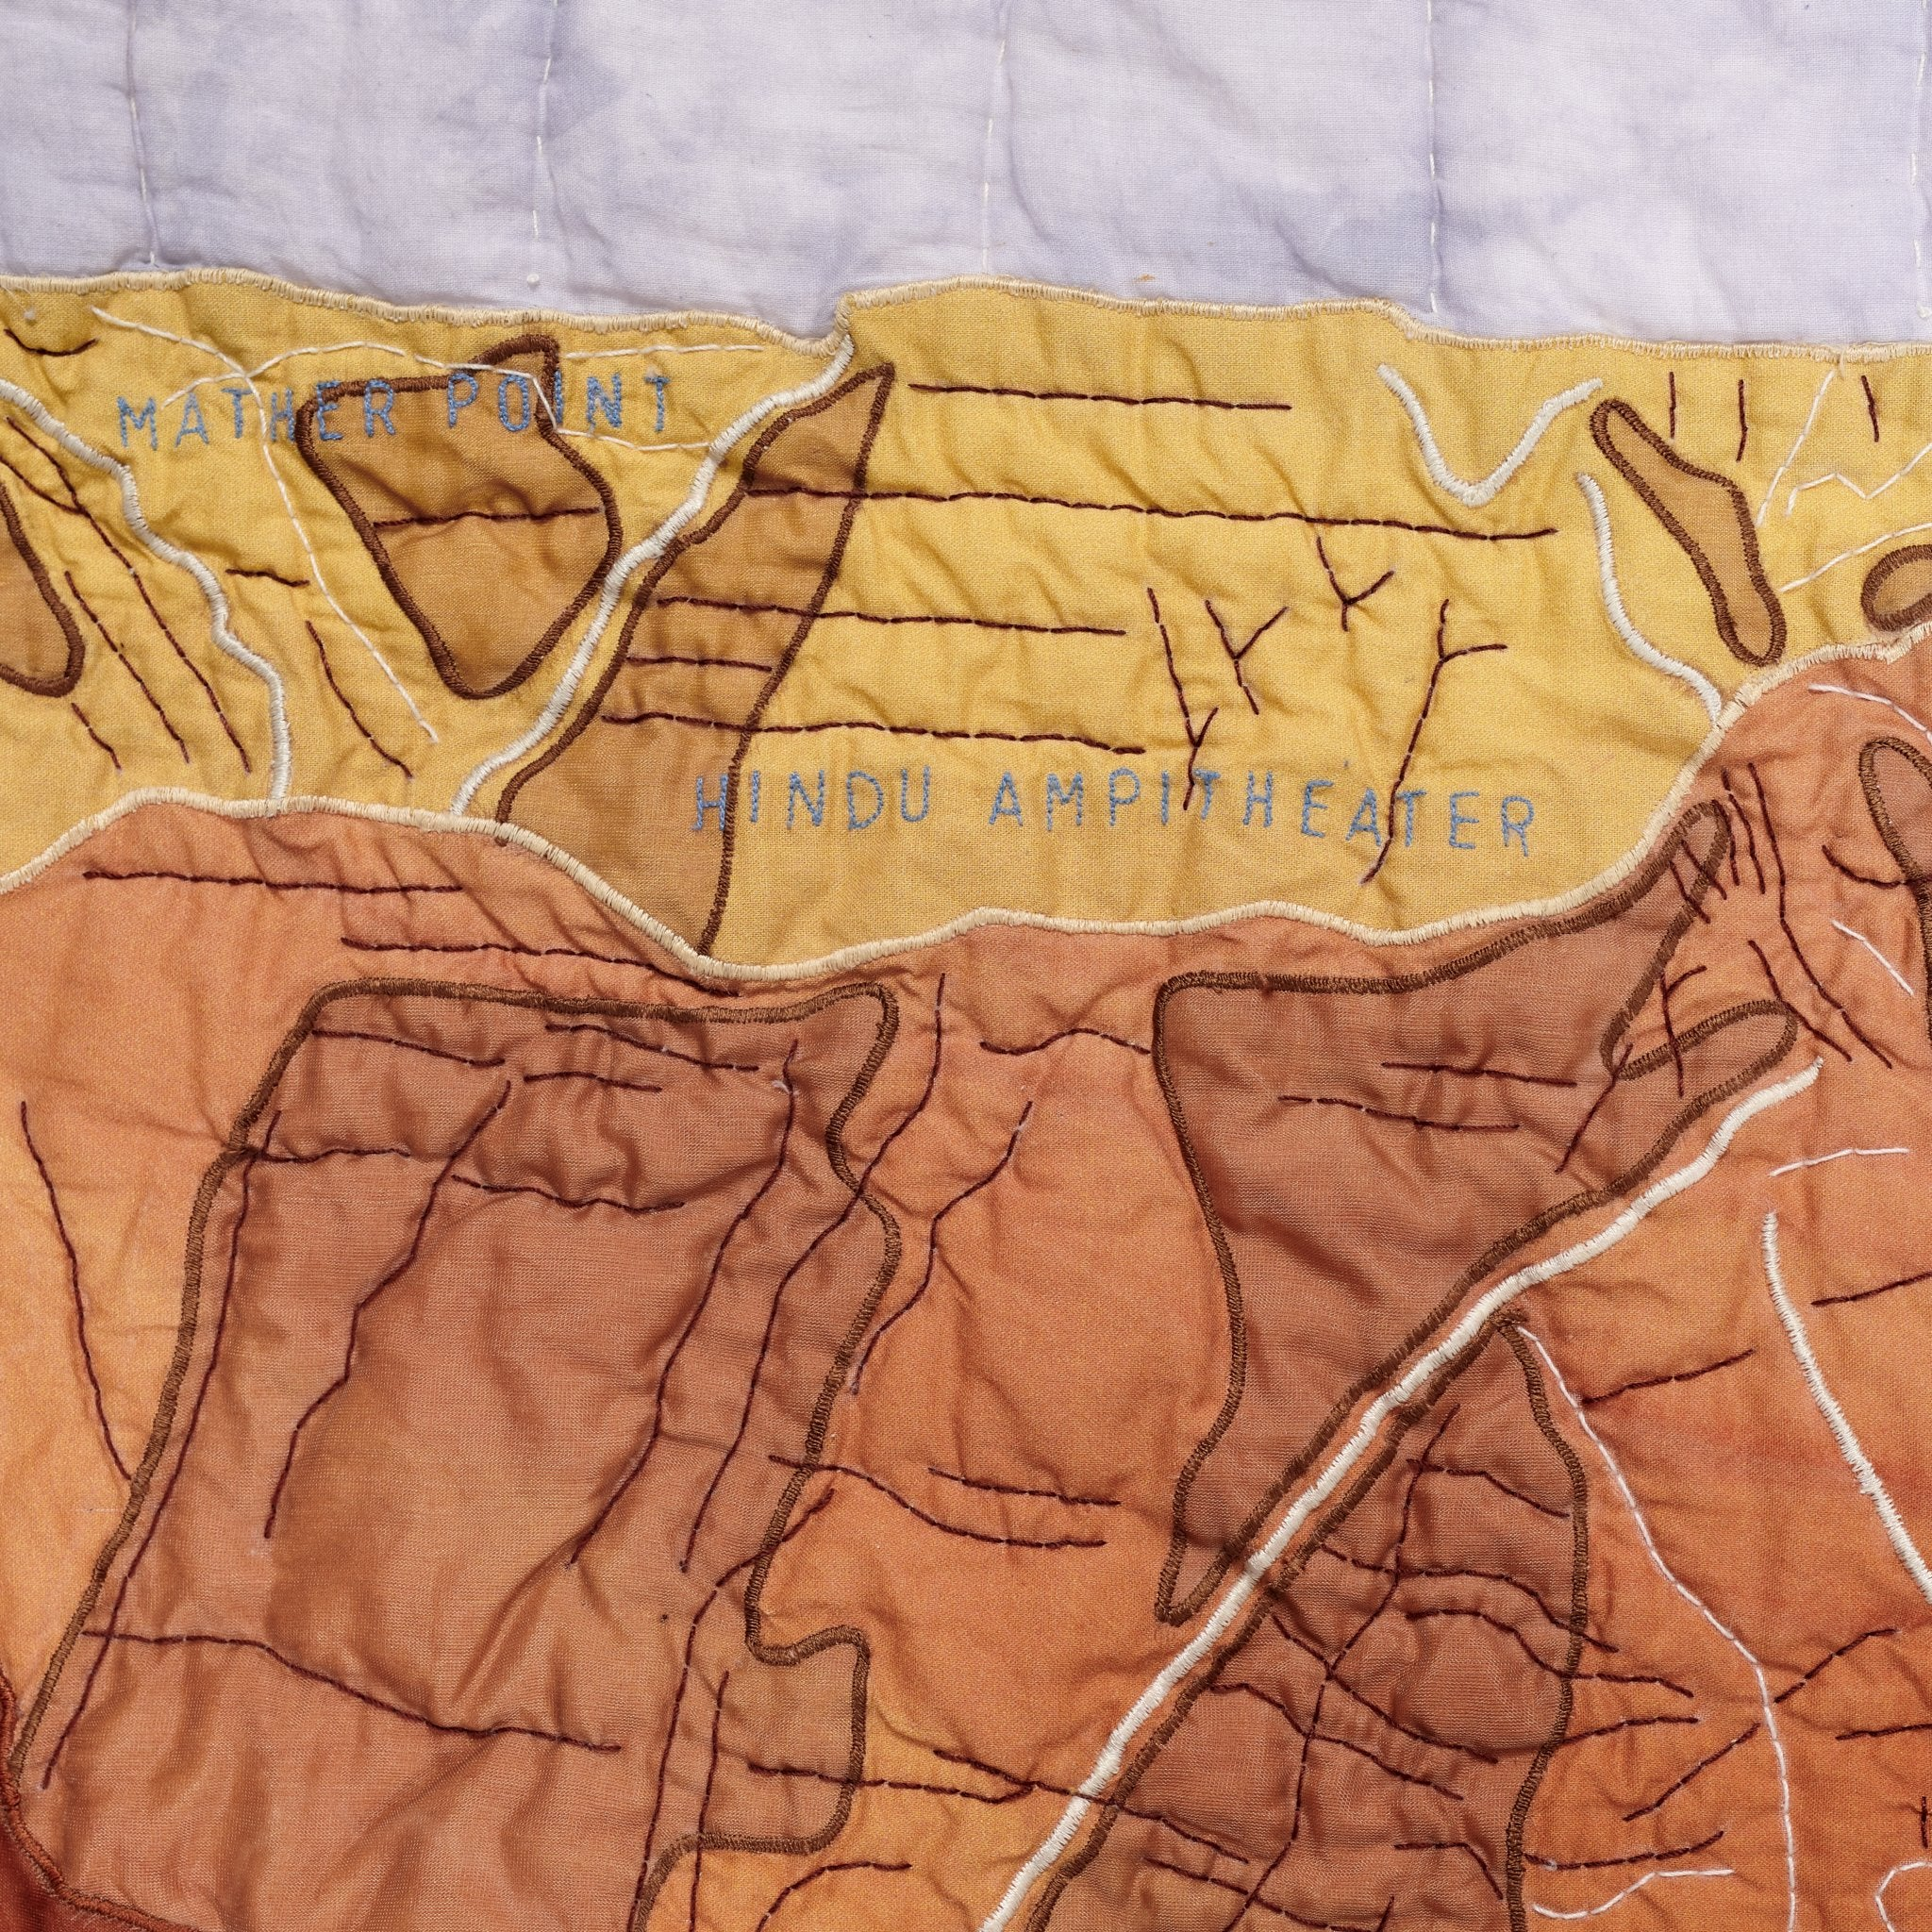 Grand Canyon Quilt